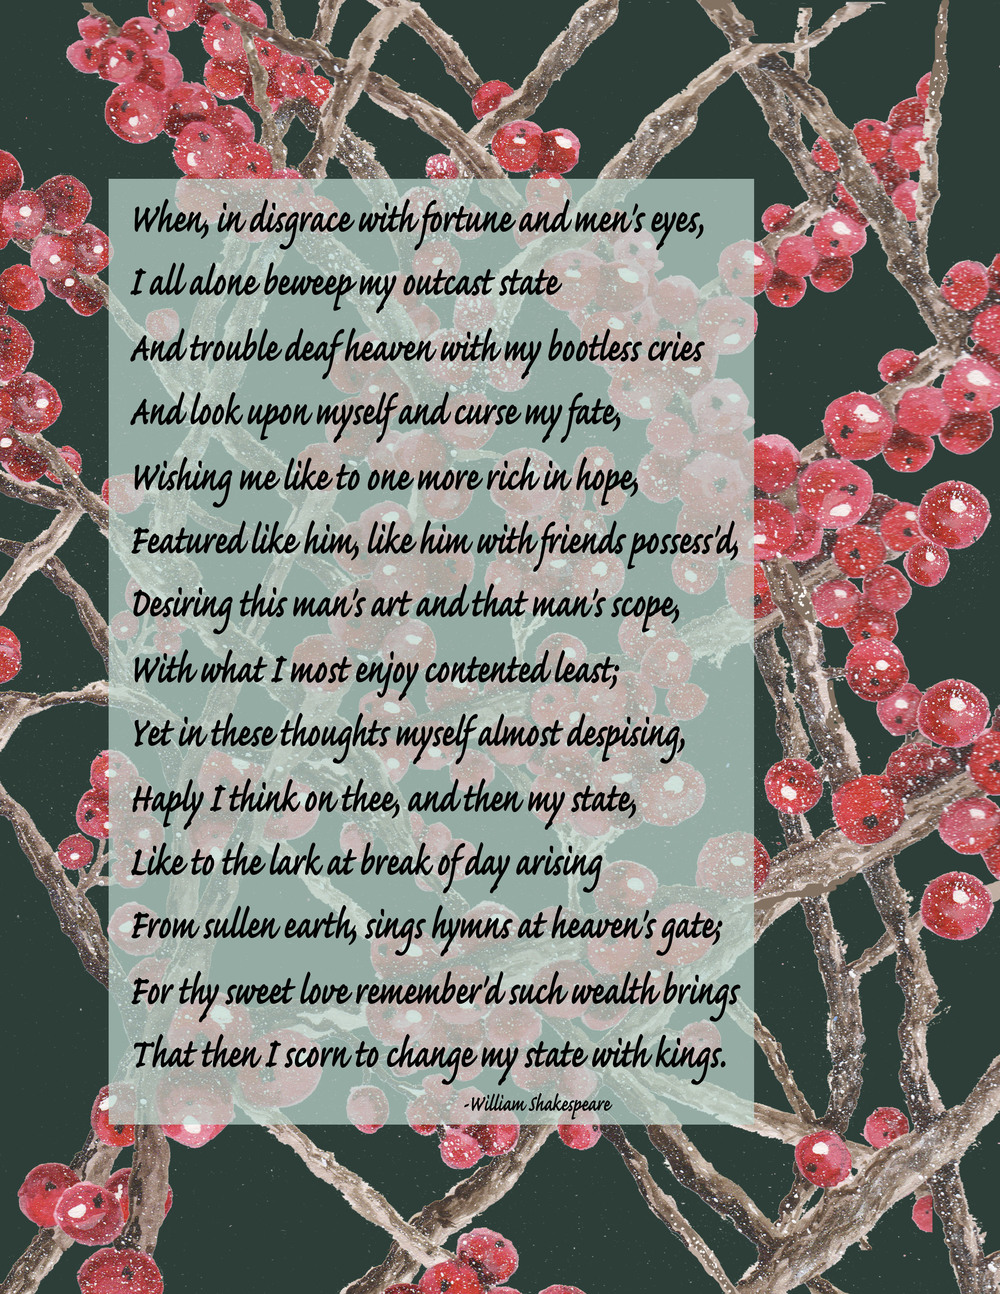 snowberries holiday with text.jpg